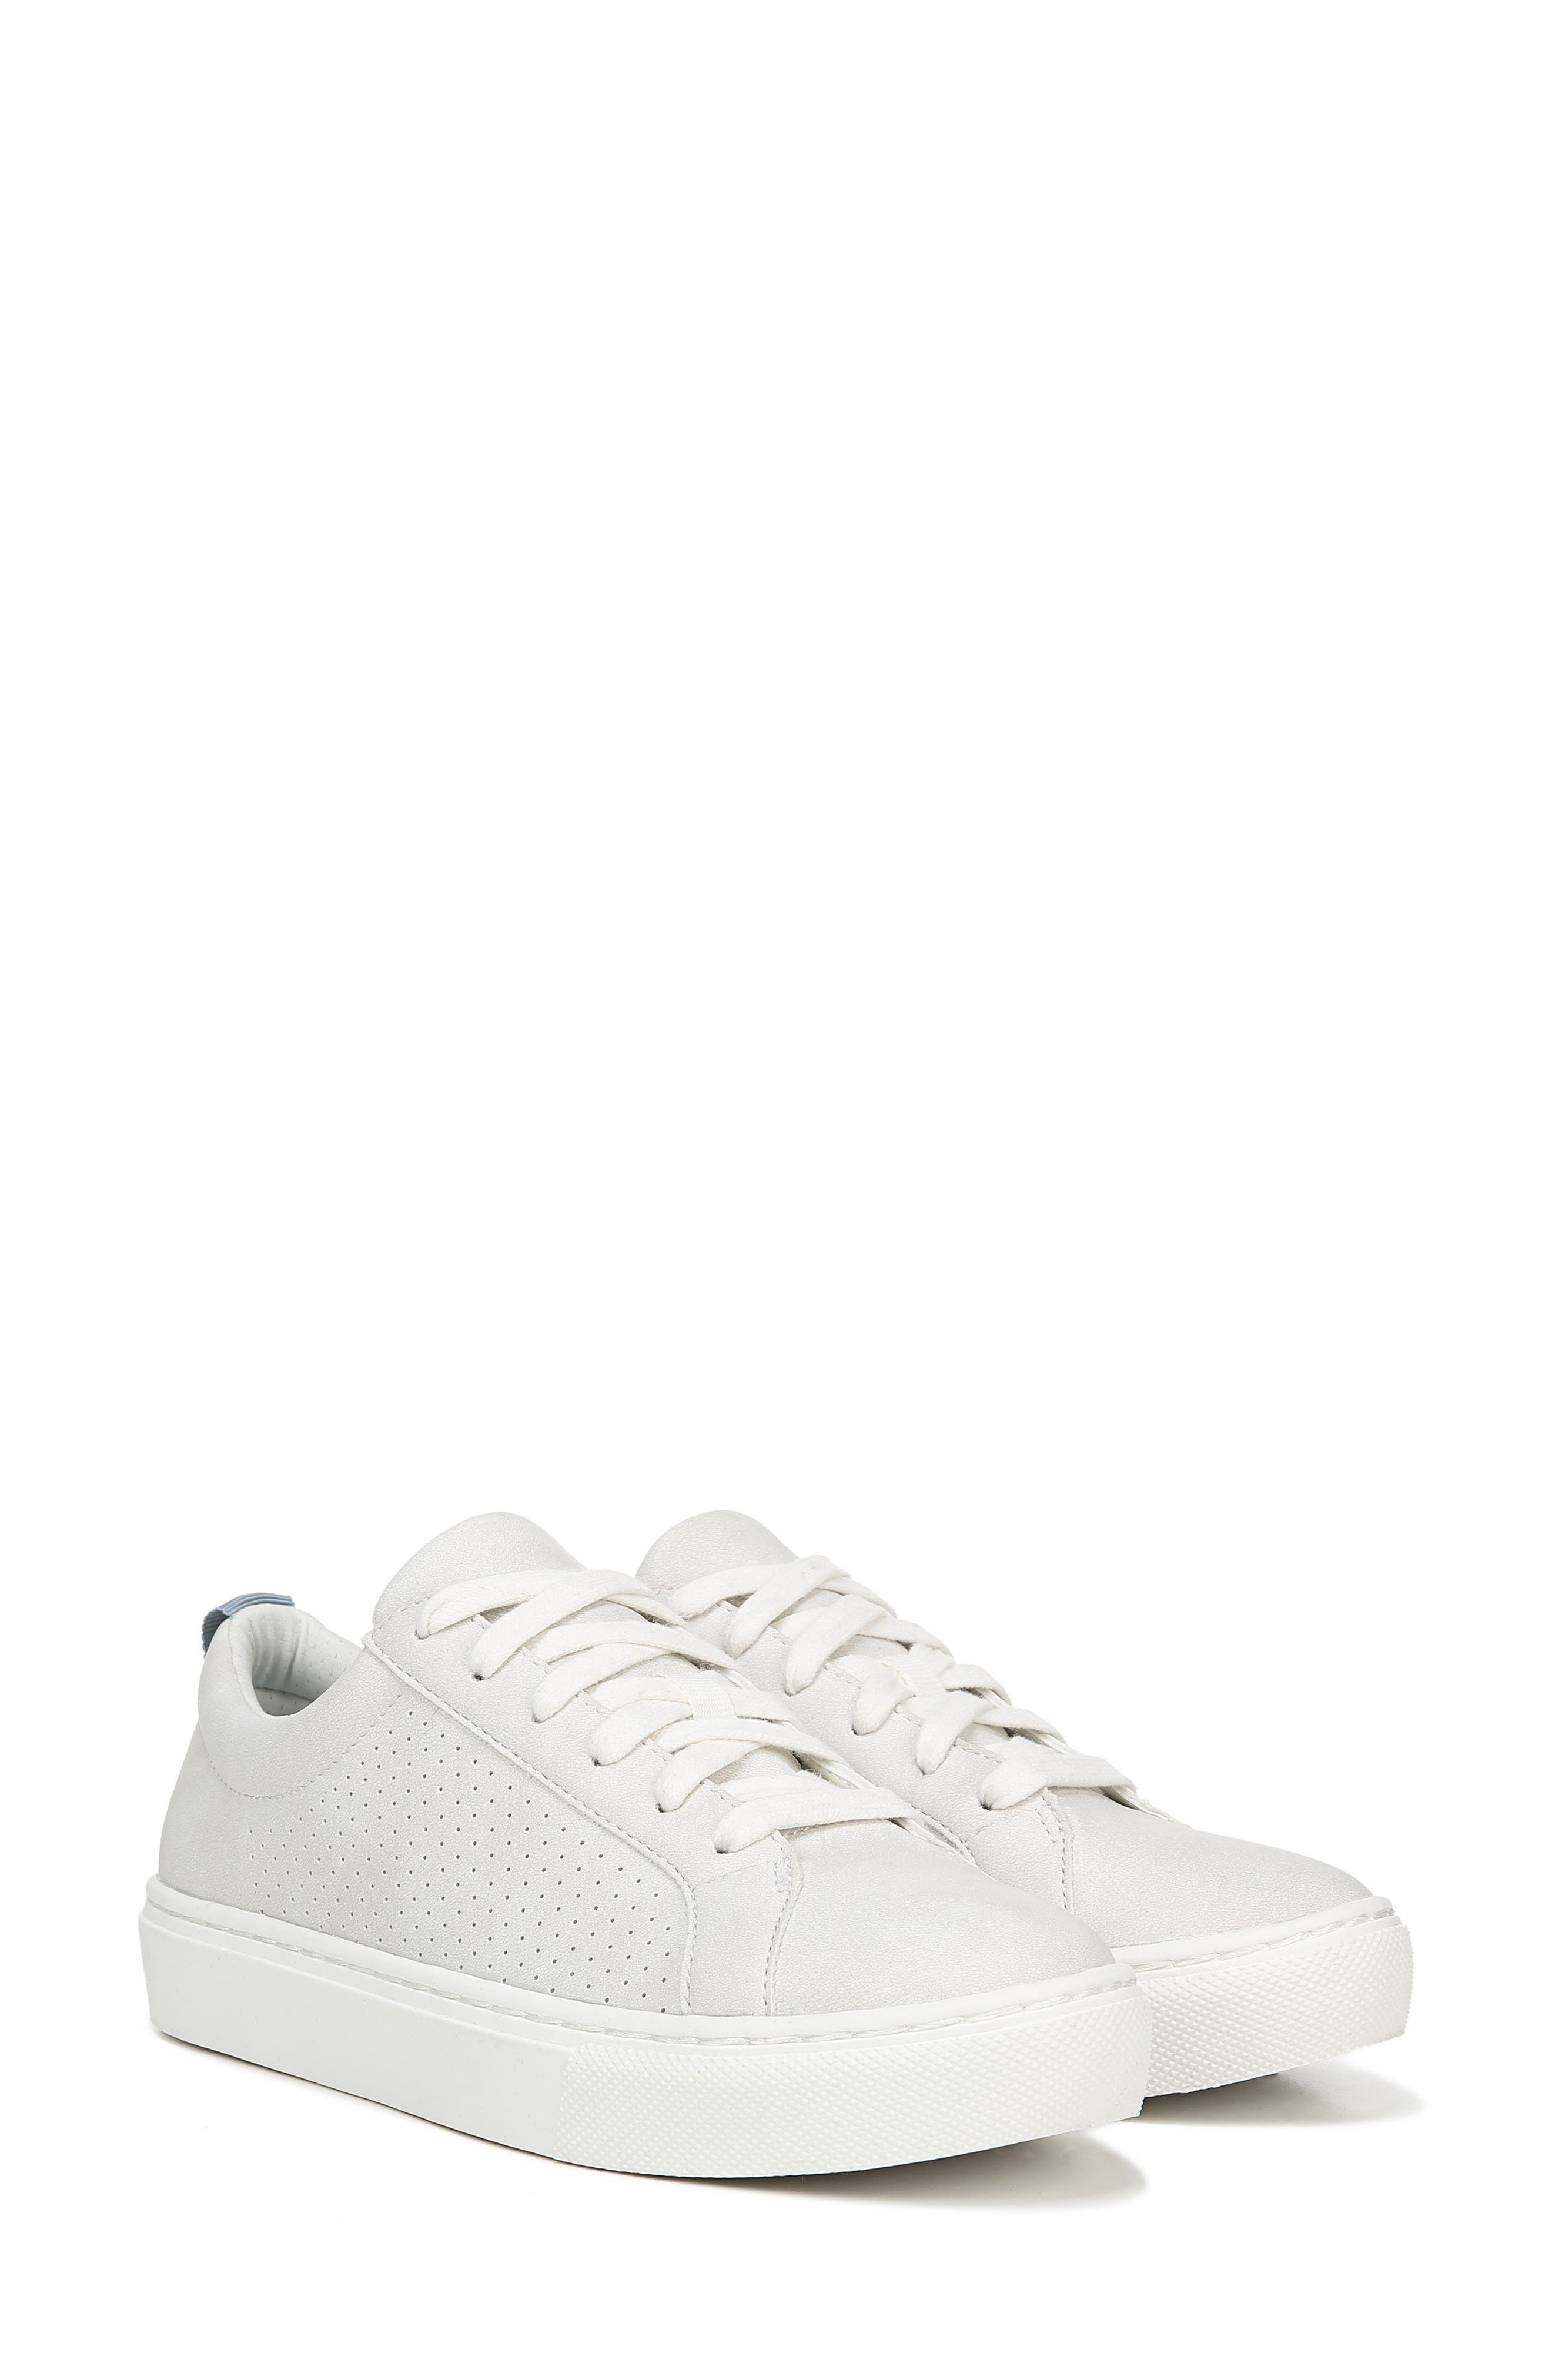 No Bad Vibes Sneaker,                             Alternate thumbnail 7, color,                             WHITE FAUX LEATHER